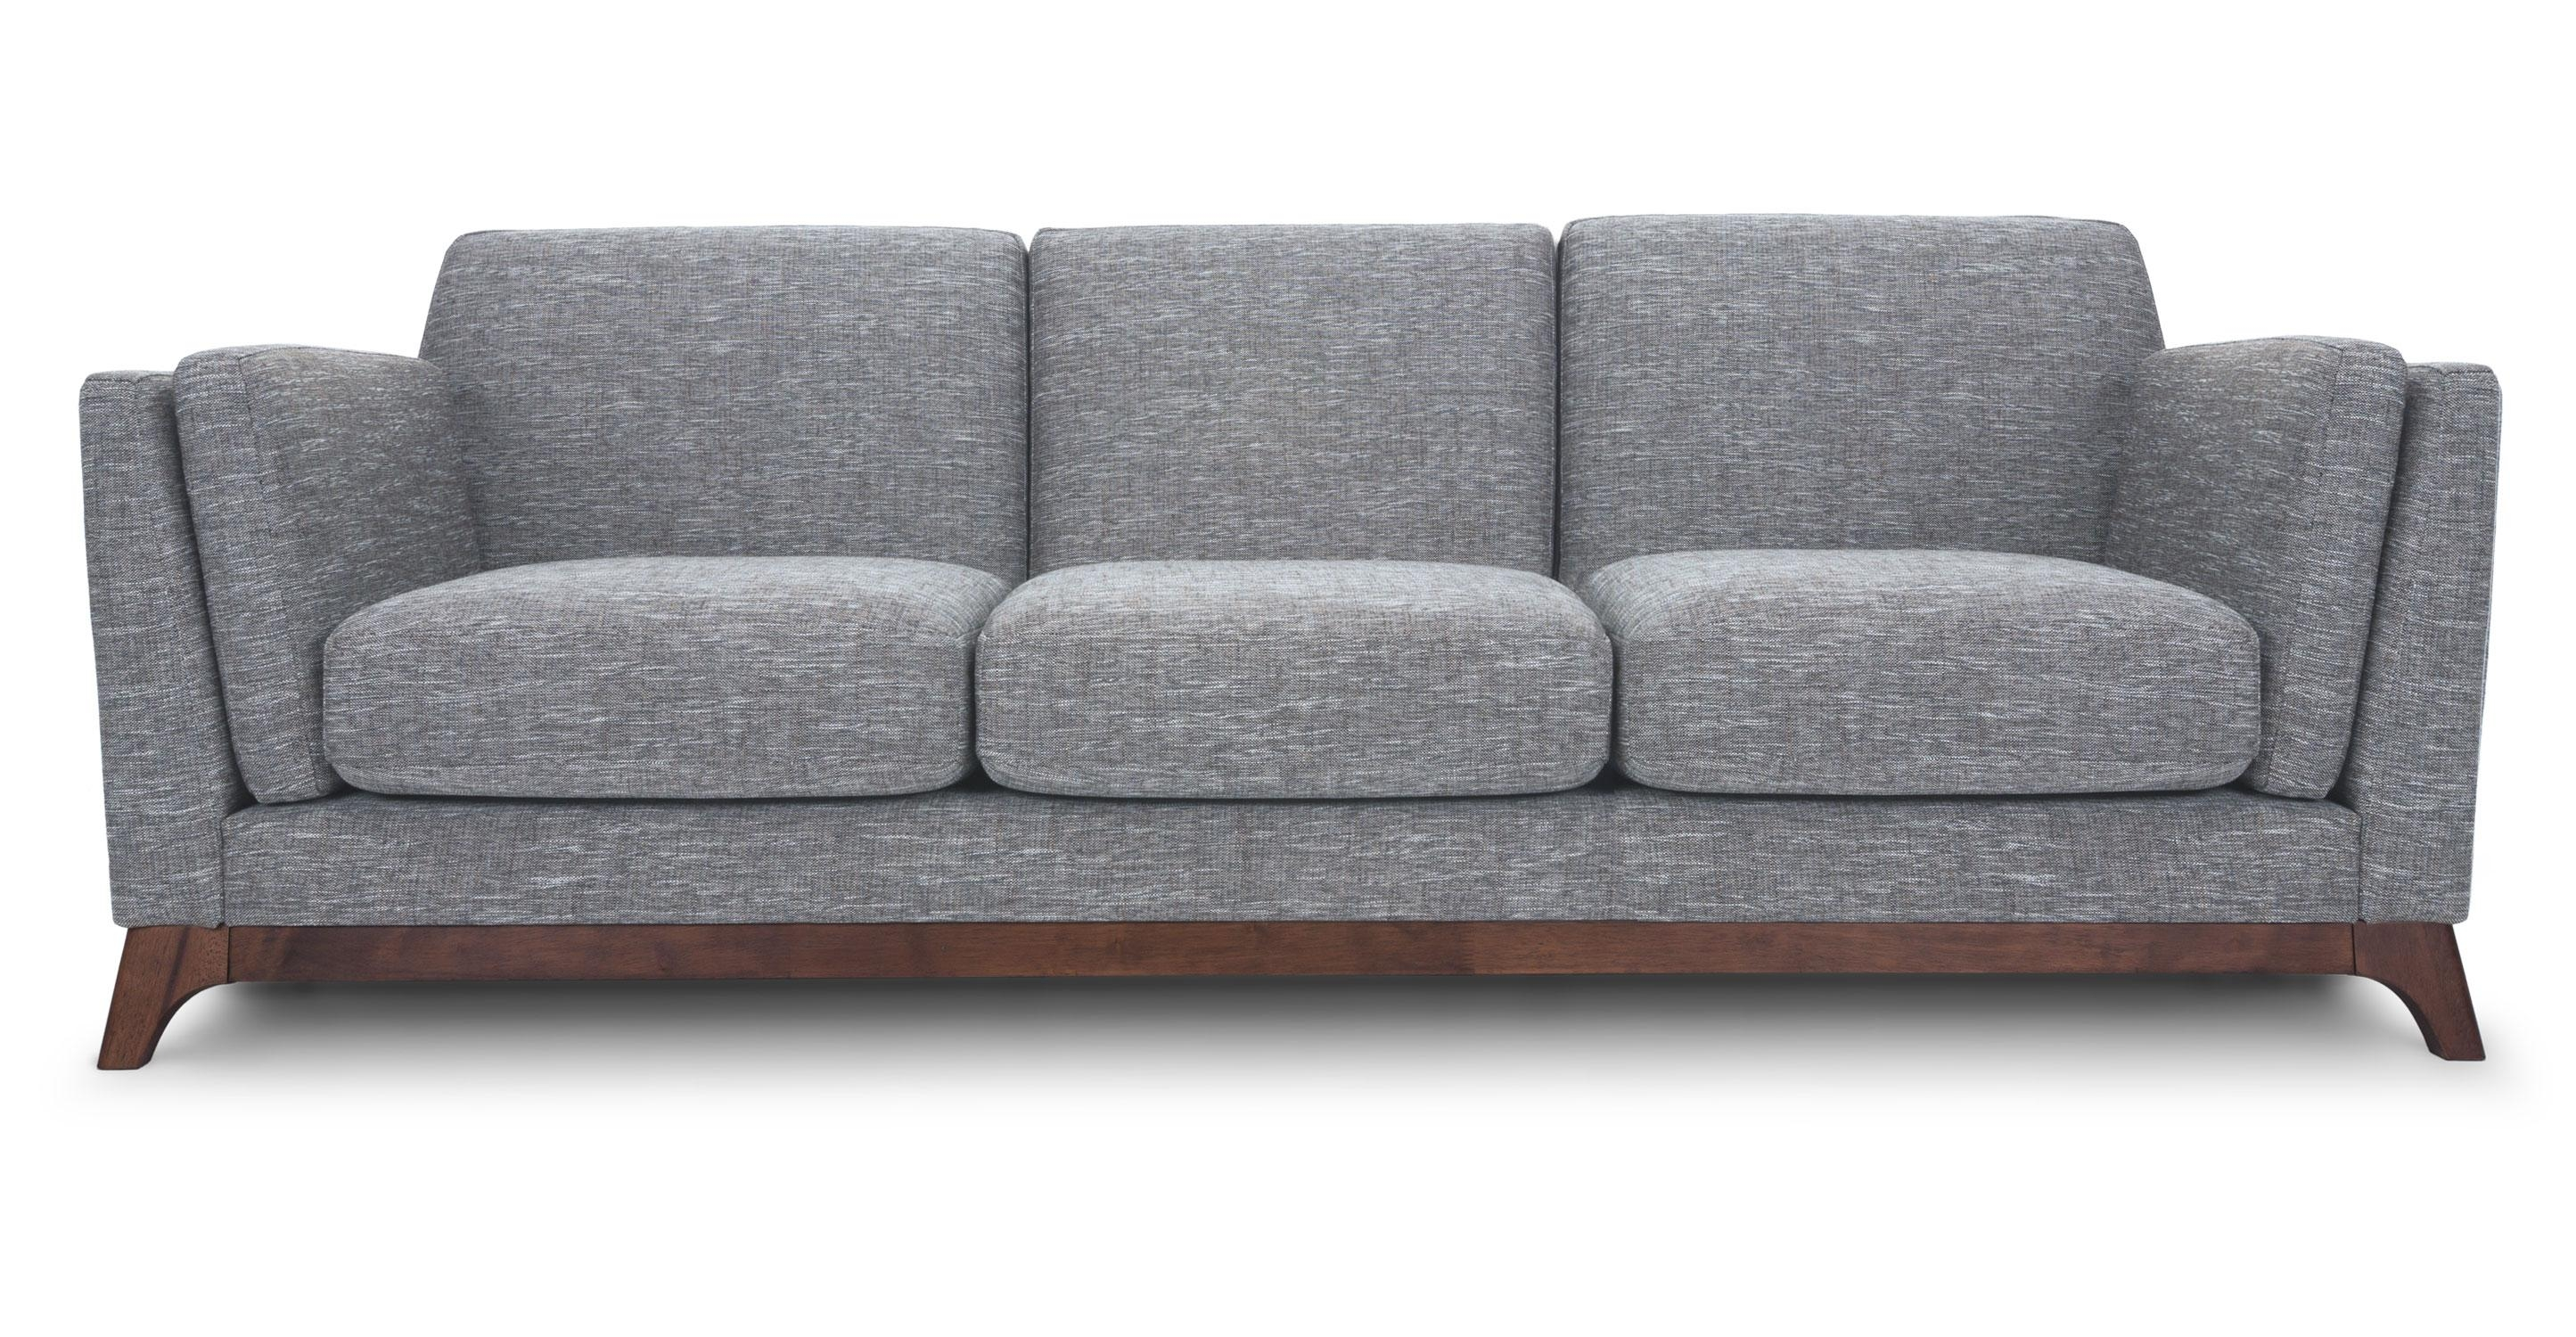 Sofas Center : Cheap Gray Sofa Outstanding Pictures Inspirations Inside Grey Sofa Chairs (View 5 of 20)